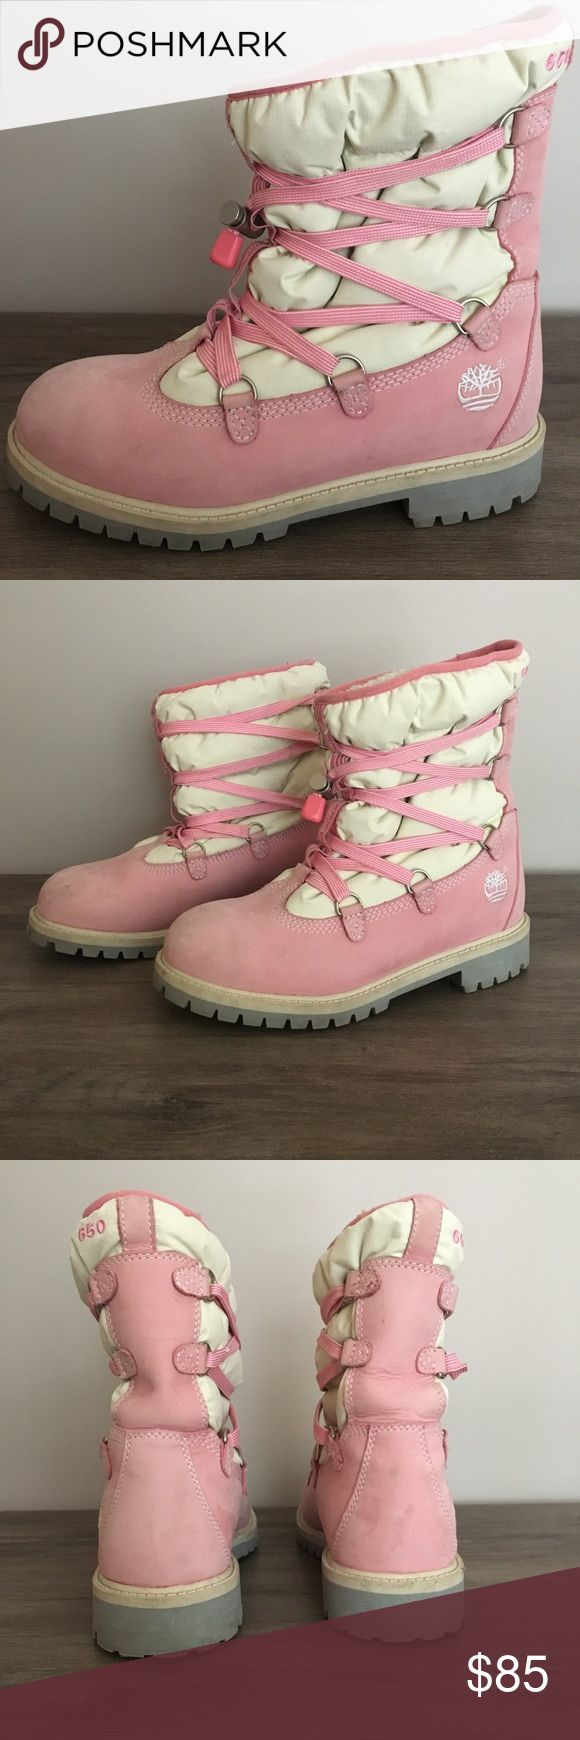 Girl's Timberland Winter boots Girl's pink Timberland winter boots. Size 5 in kids/ Euro 37 ( fits like a women's 7). Pink. In great condition, perfect for snow ❄️ Timberland Shoes Winter & Rain Boots